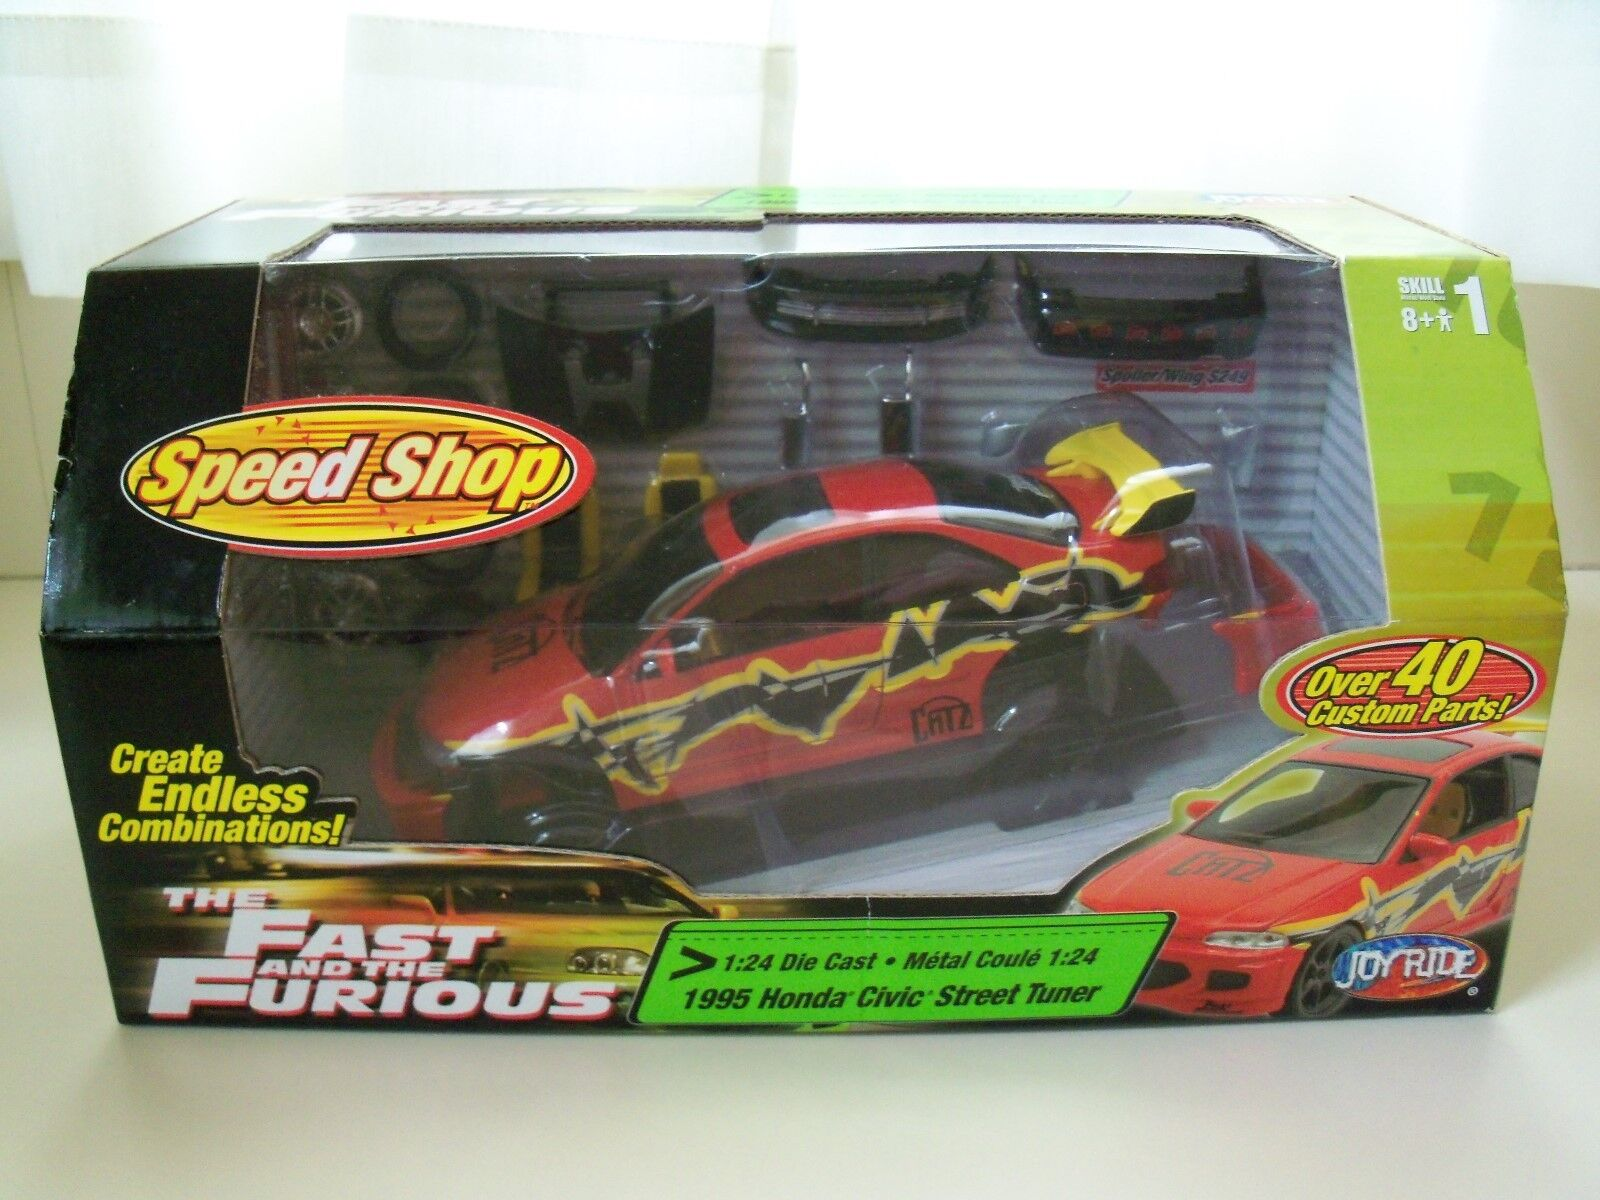 ERTL JOY RIDE - THE FAST AND THE FURIOUS - SPEED SHOP 1995 HONDA CIVIC 1 24